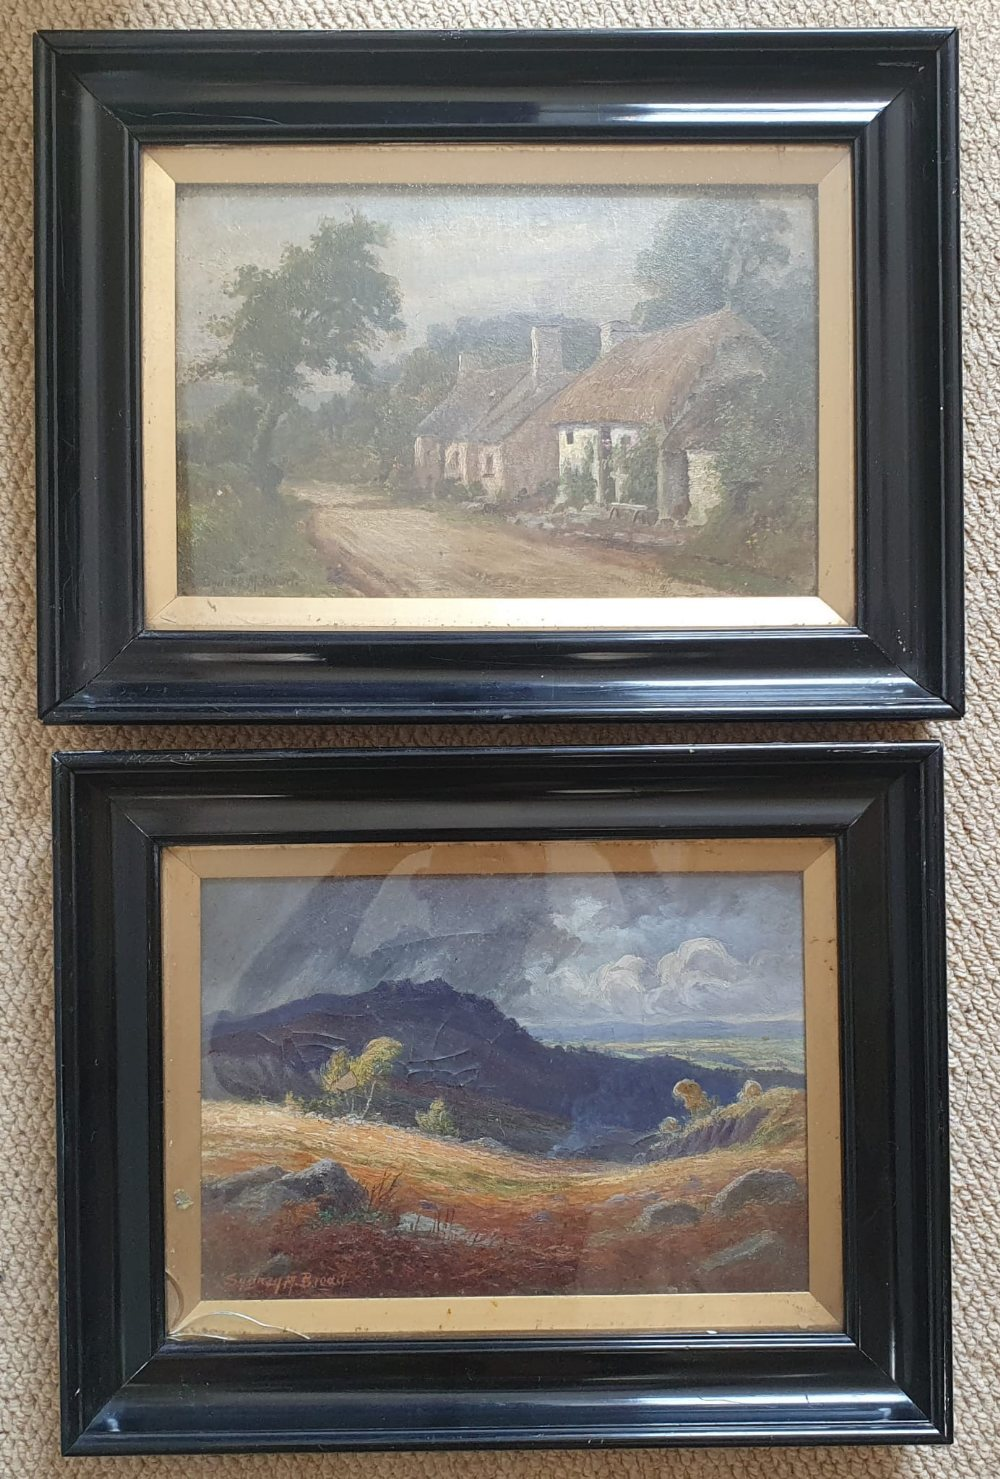 """Sydney M Broad - a pair of oils on board - Rural scenes, 9.5"""" x 13.5"""" - one a/f. (2)"""